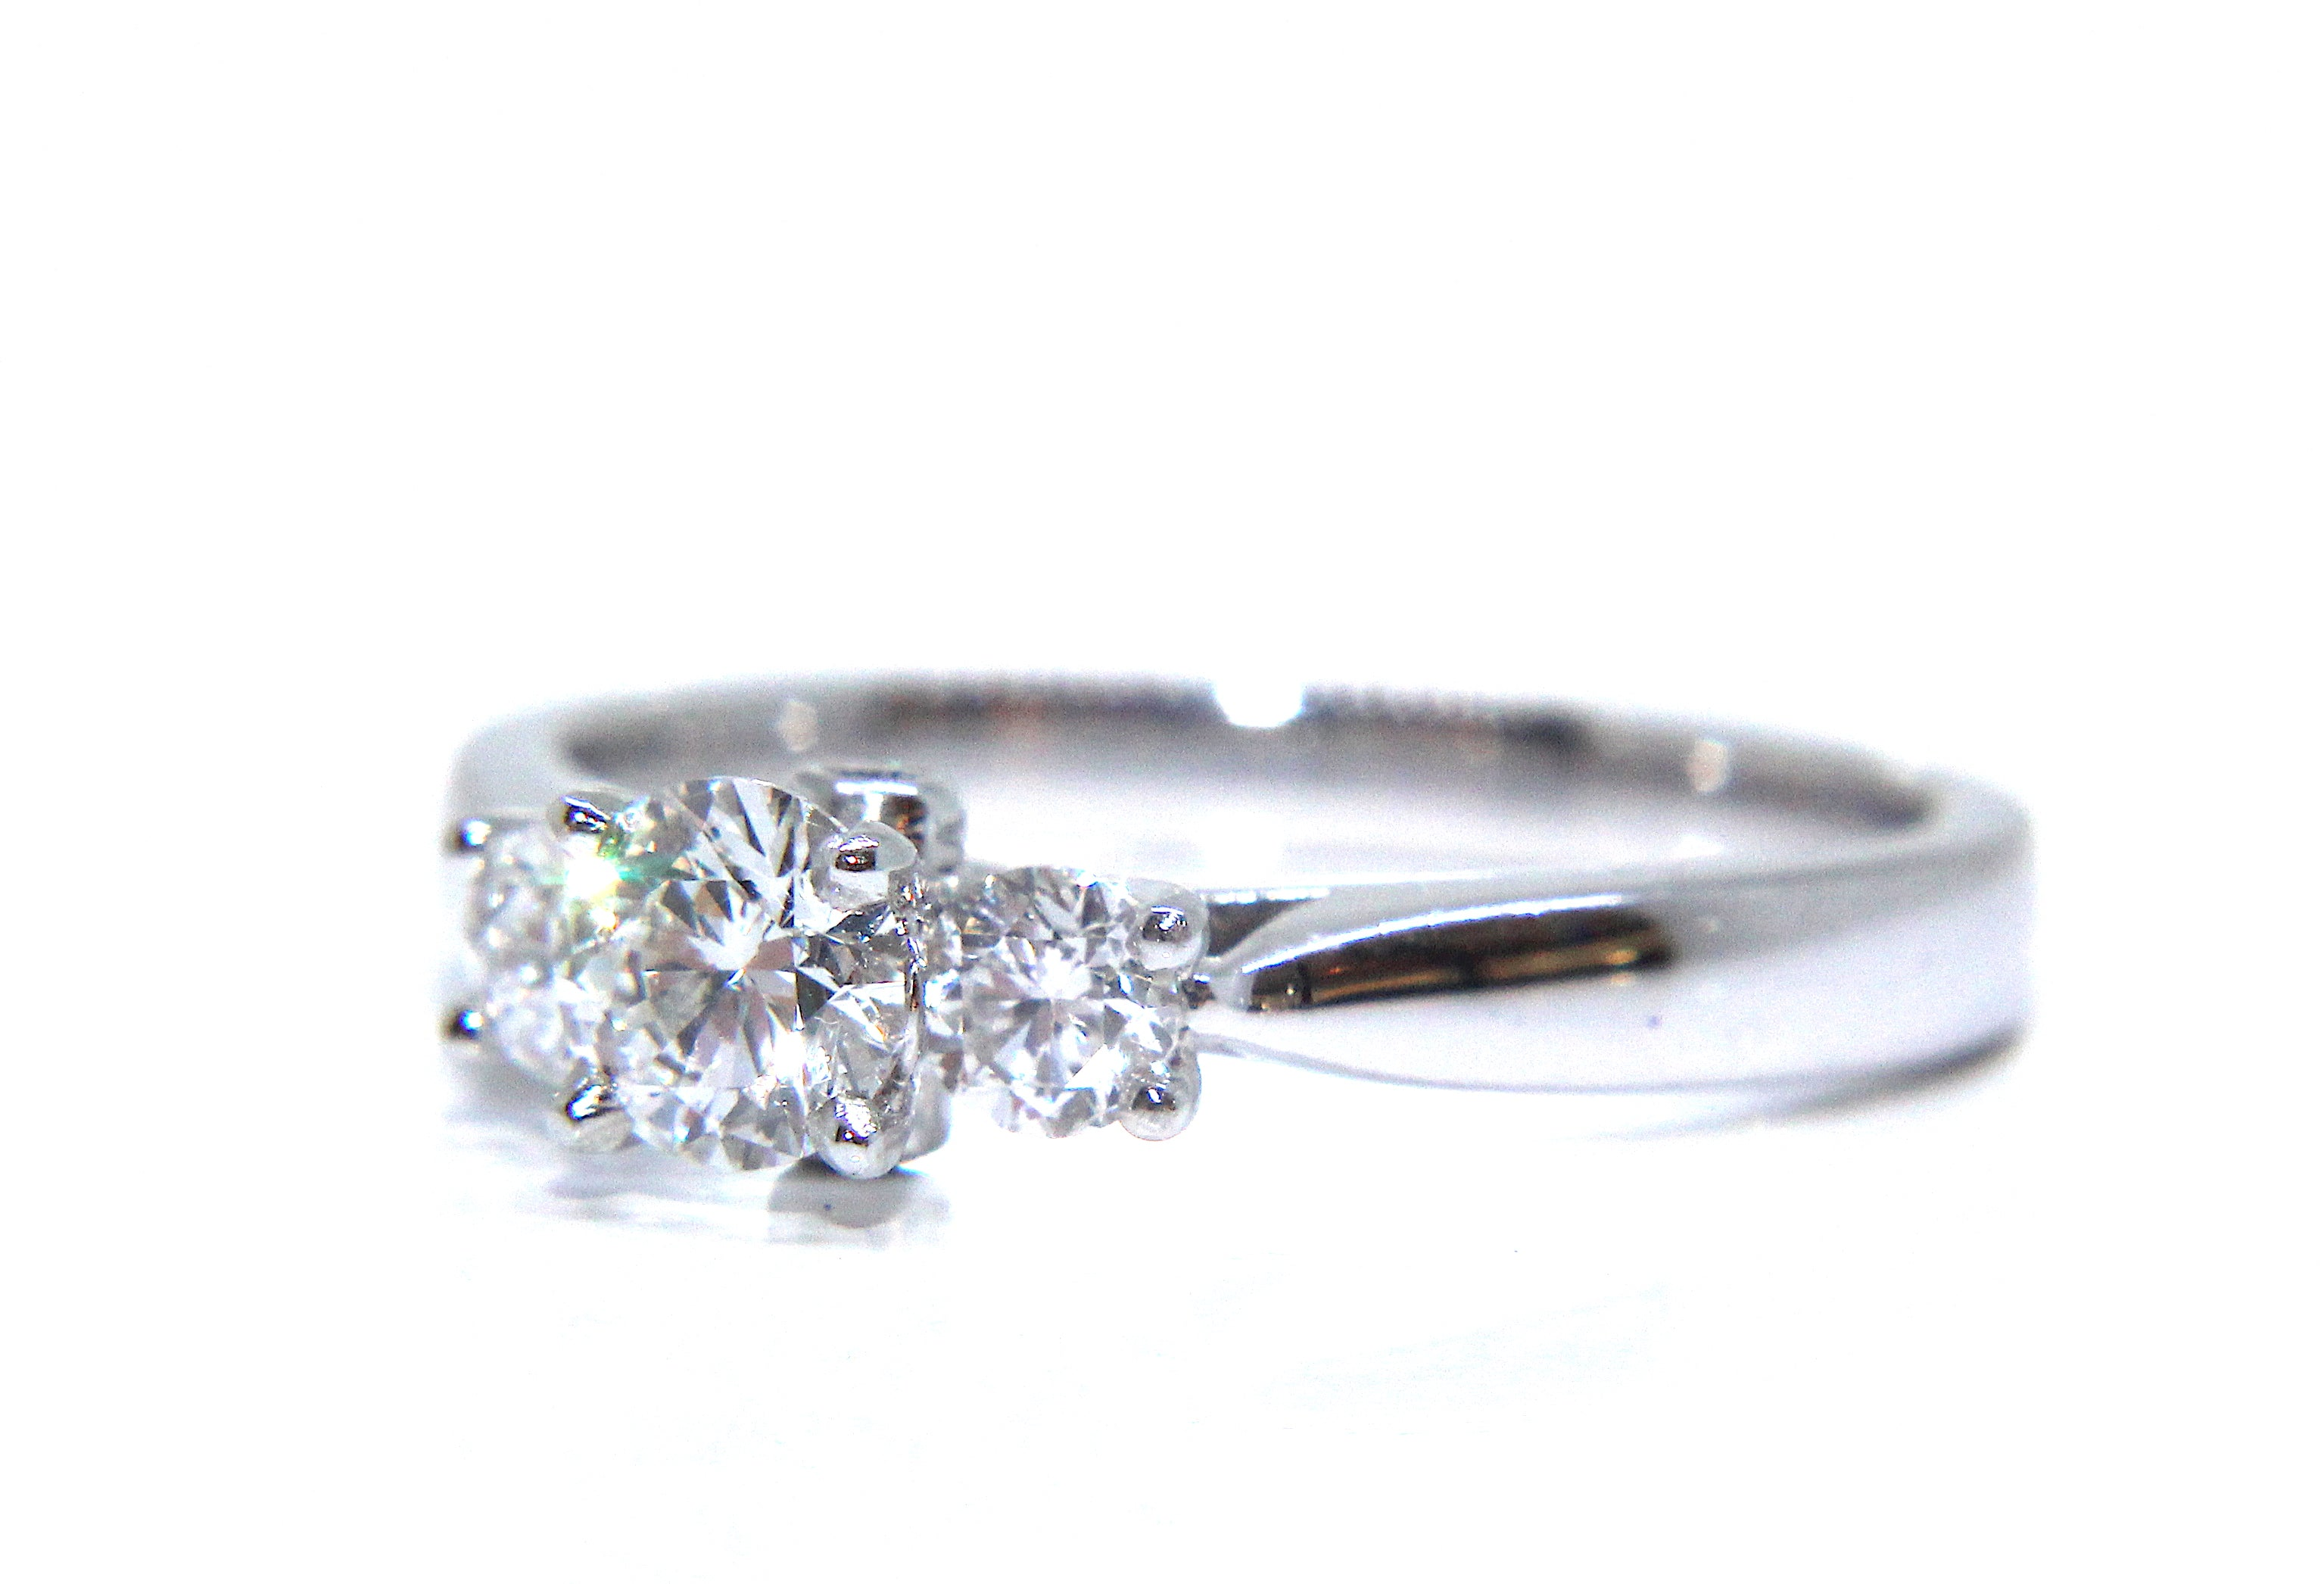 lancaster rings in camphill img copy york marquise diamonds setting oval custom engagement and bespoke